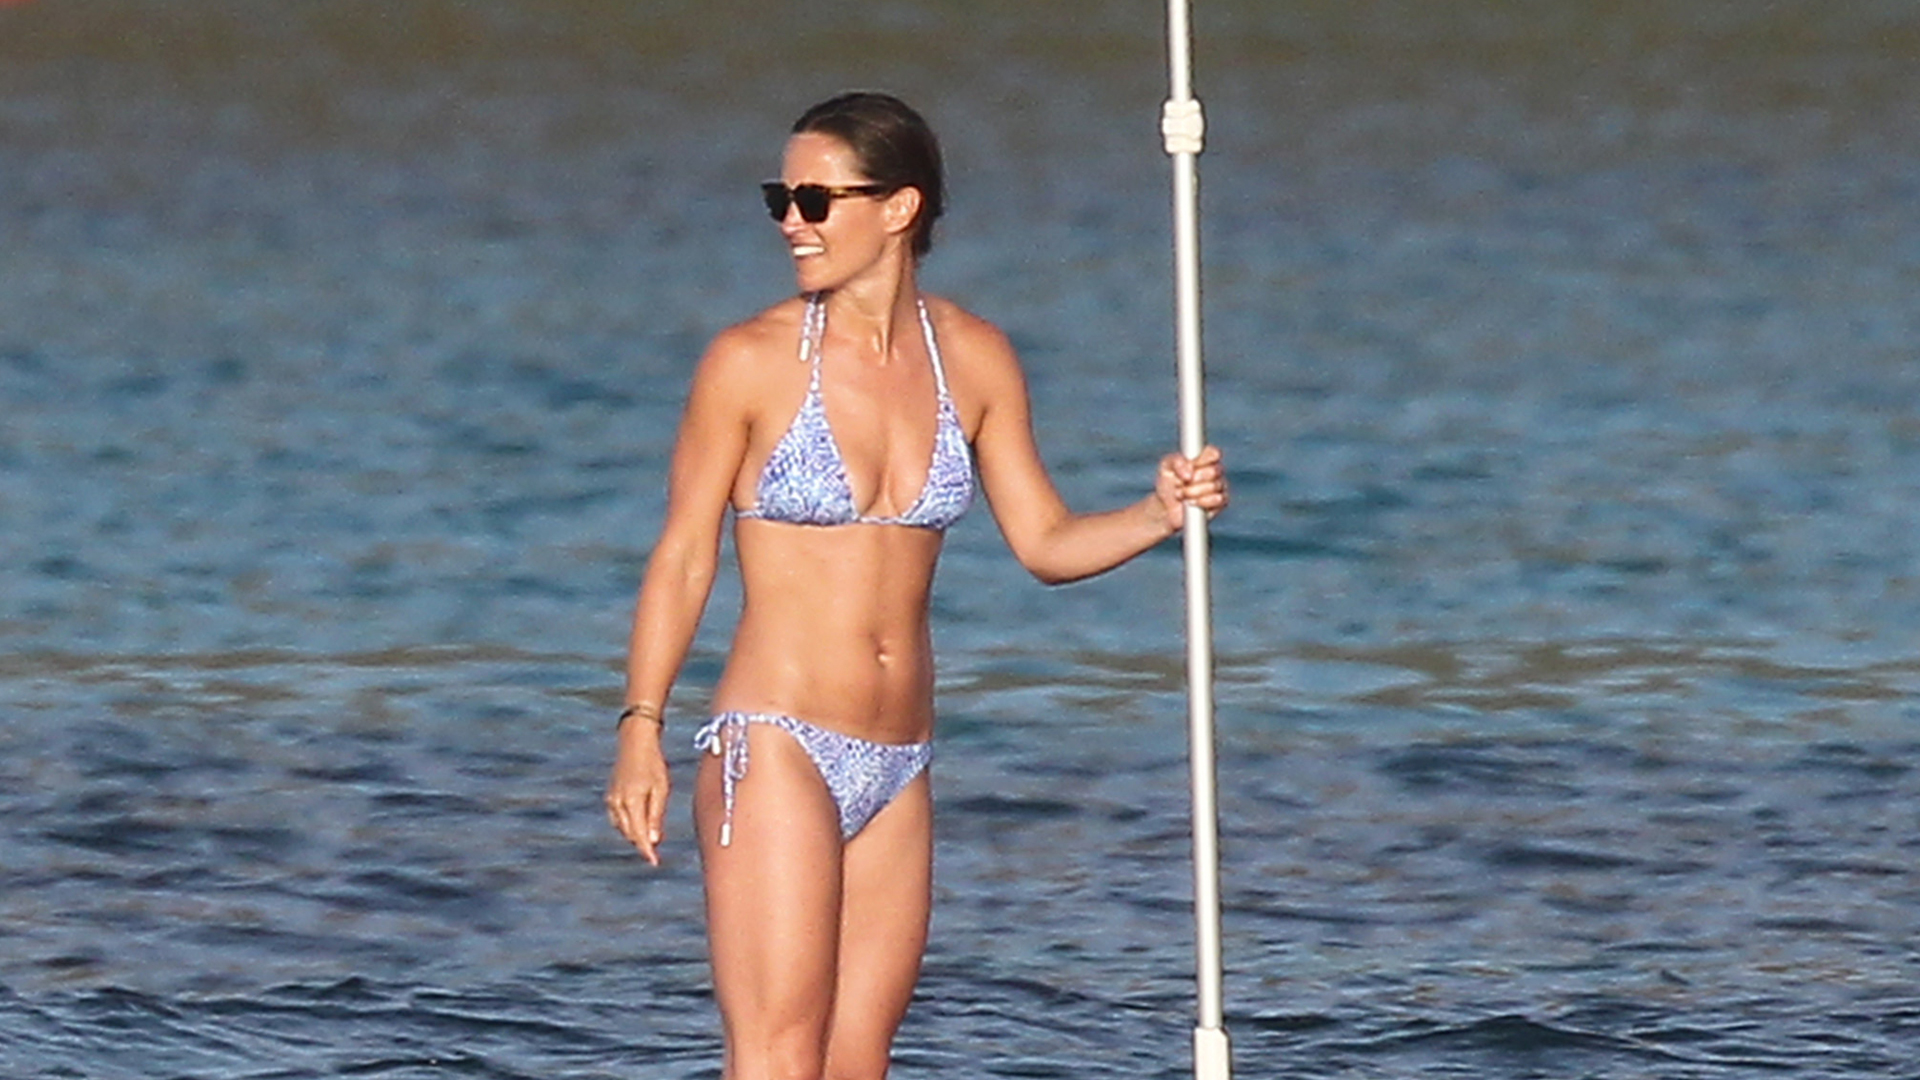 a8372dd4c2 Pippa Middleton Shows Off Her Super Toned Bod While Paddleboarding in St.  Barts